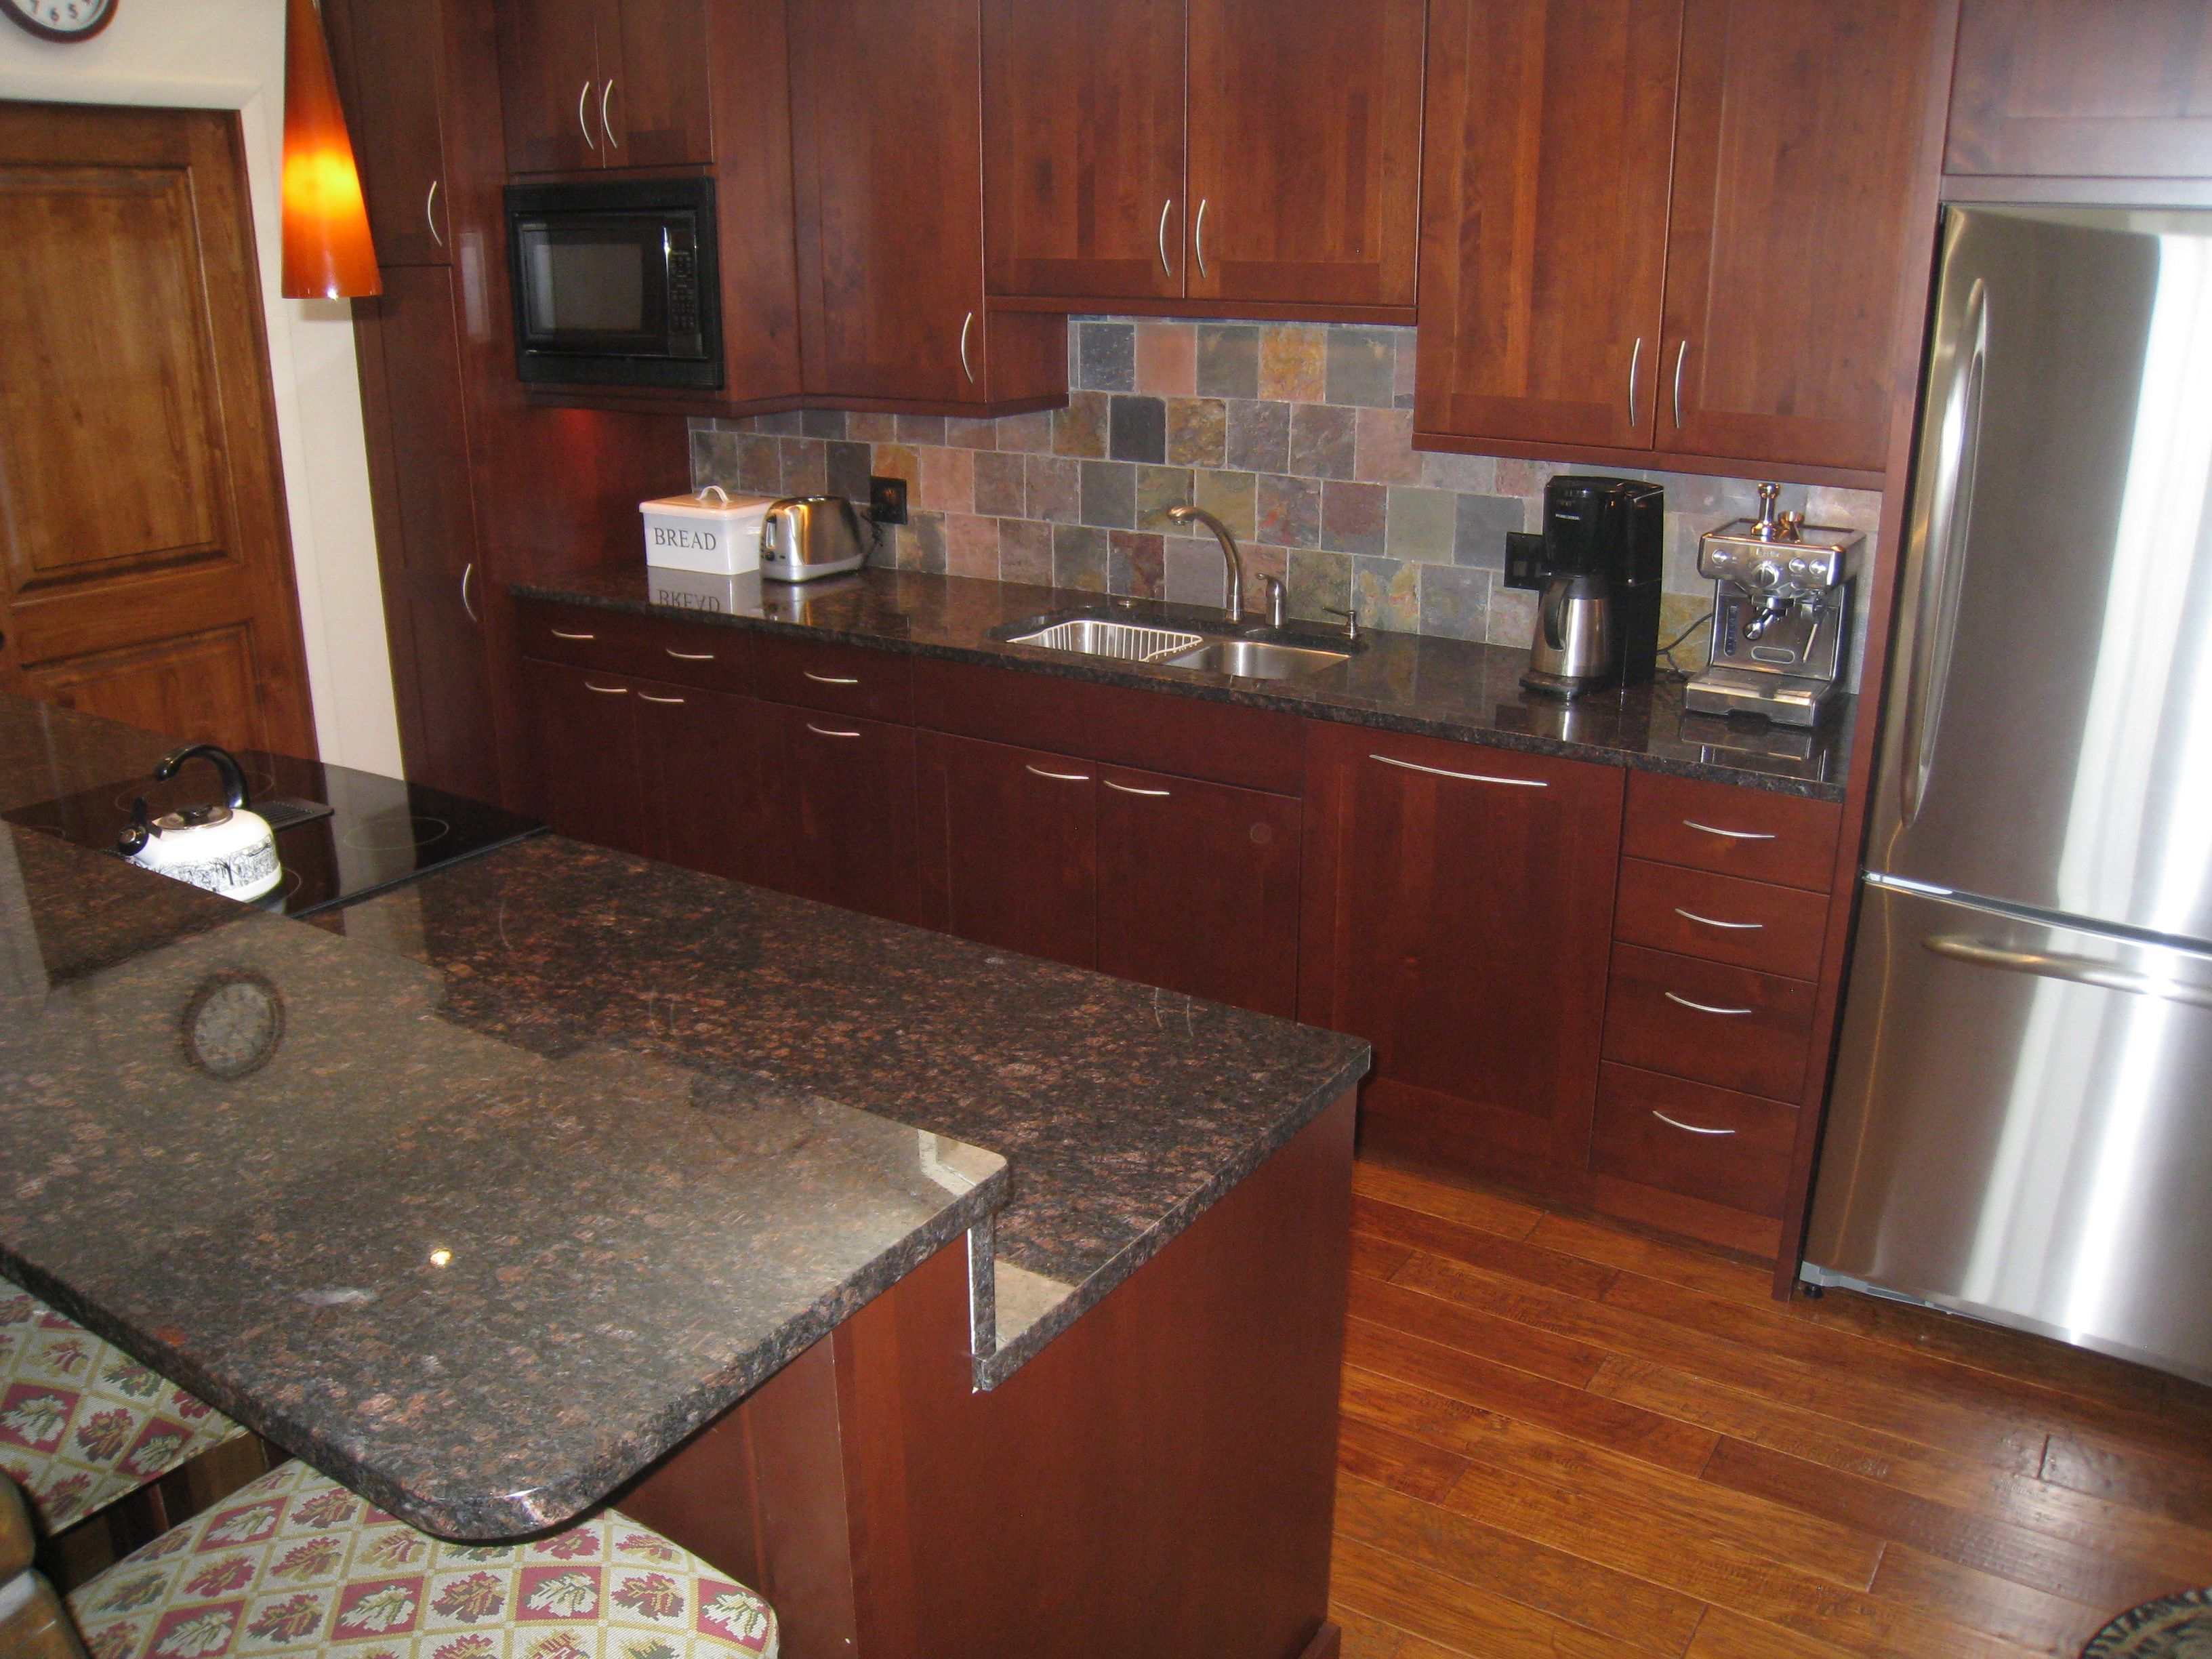 Granite Kitchen Floors Oak Cabinets And Hardwood Floors From Painted Dark Oak Cabinets